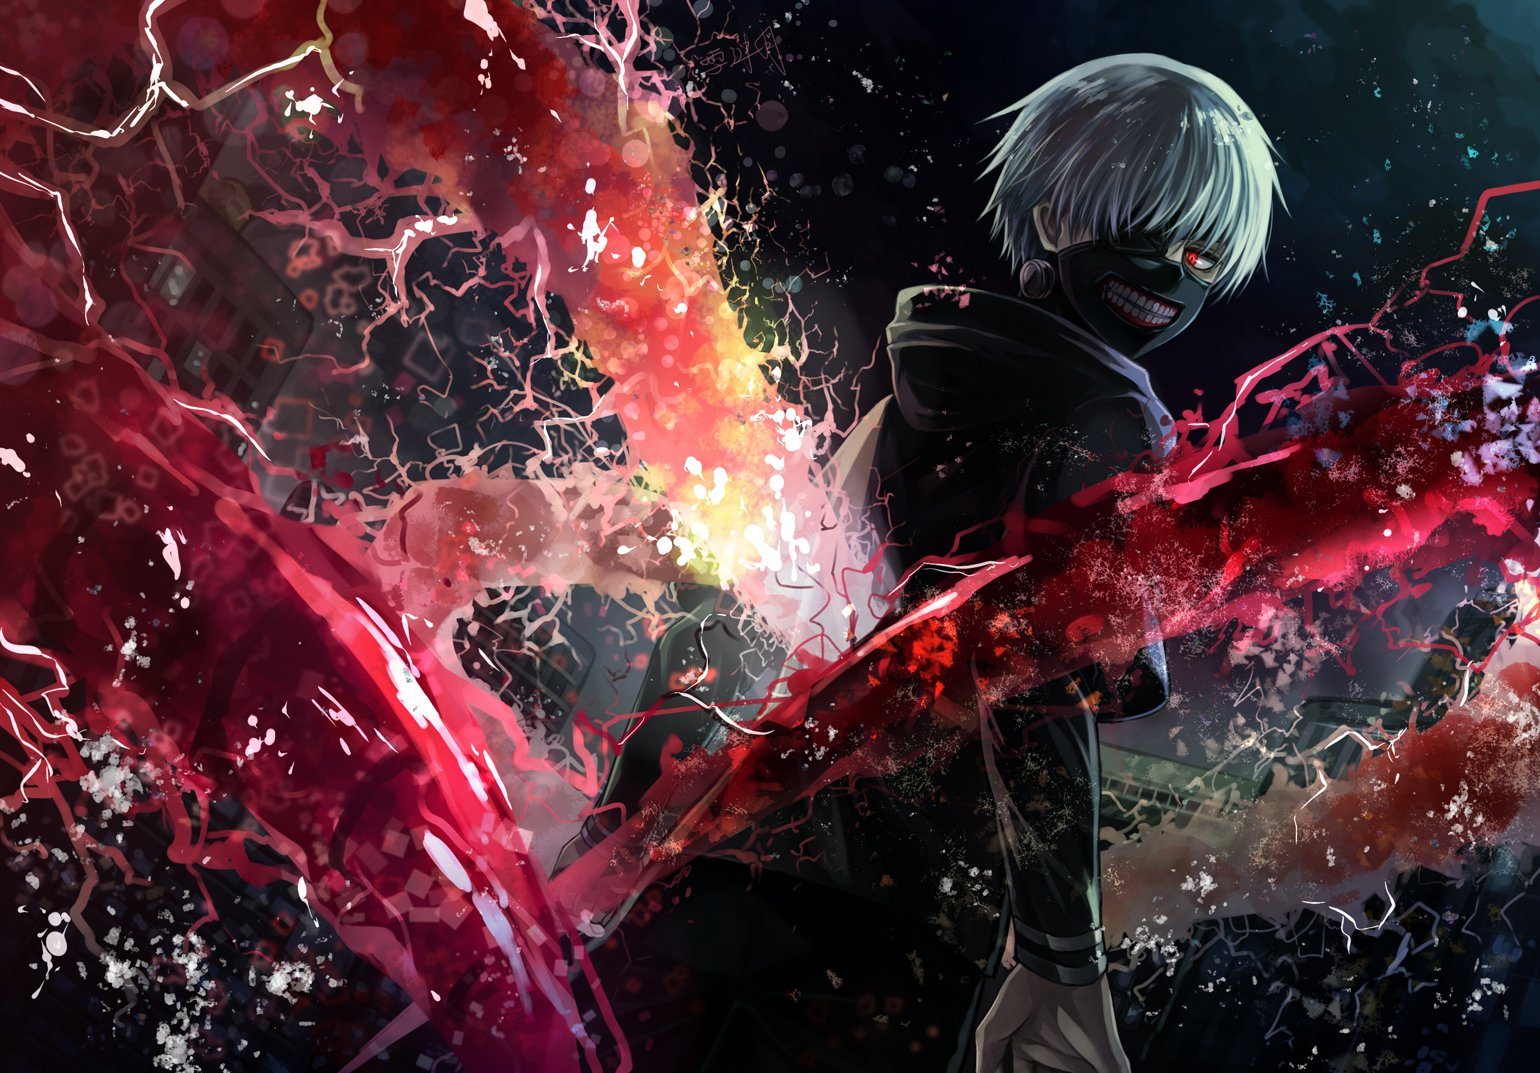 Tokyo Ghoul Kaneki Hd Wallpaper Important Wallpapers 1540x1073